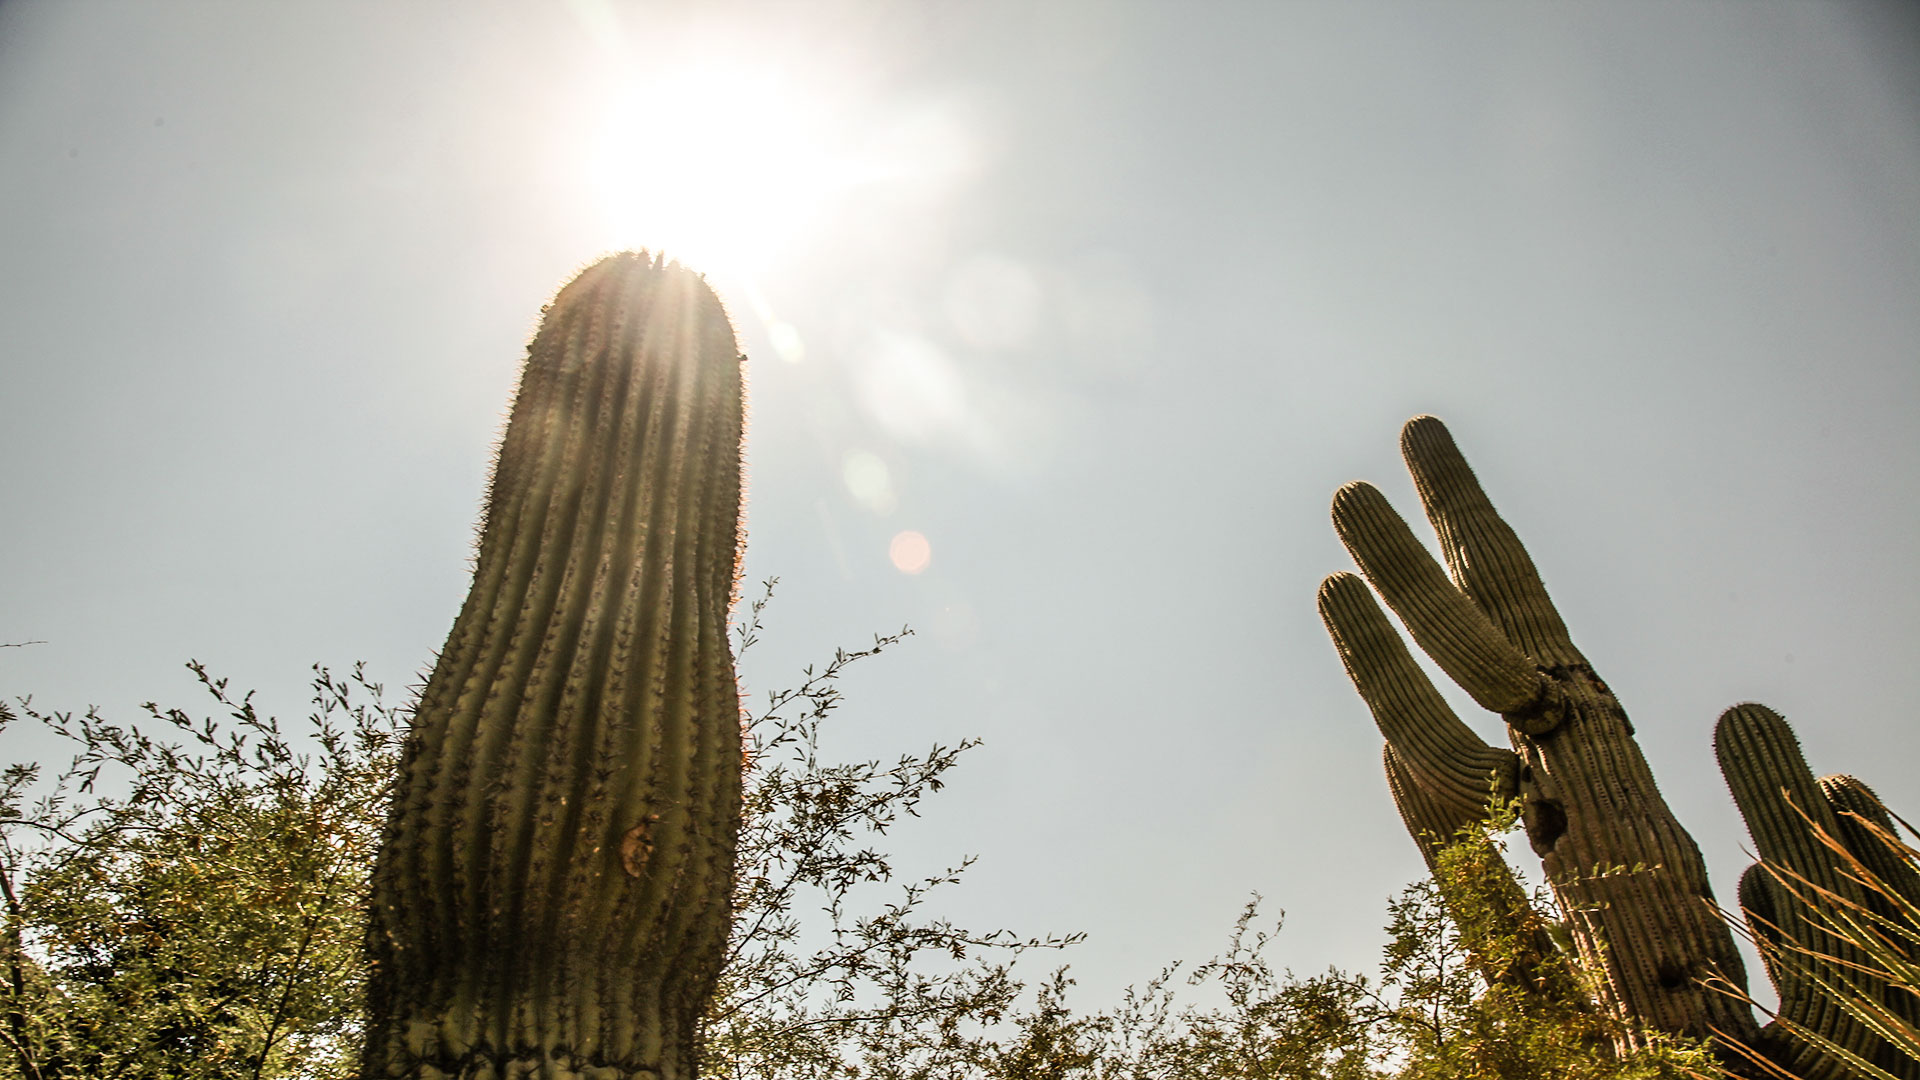 The highest temperature ever recorded in Tucson was 117 degrees, in 1990.